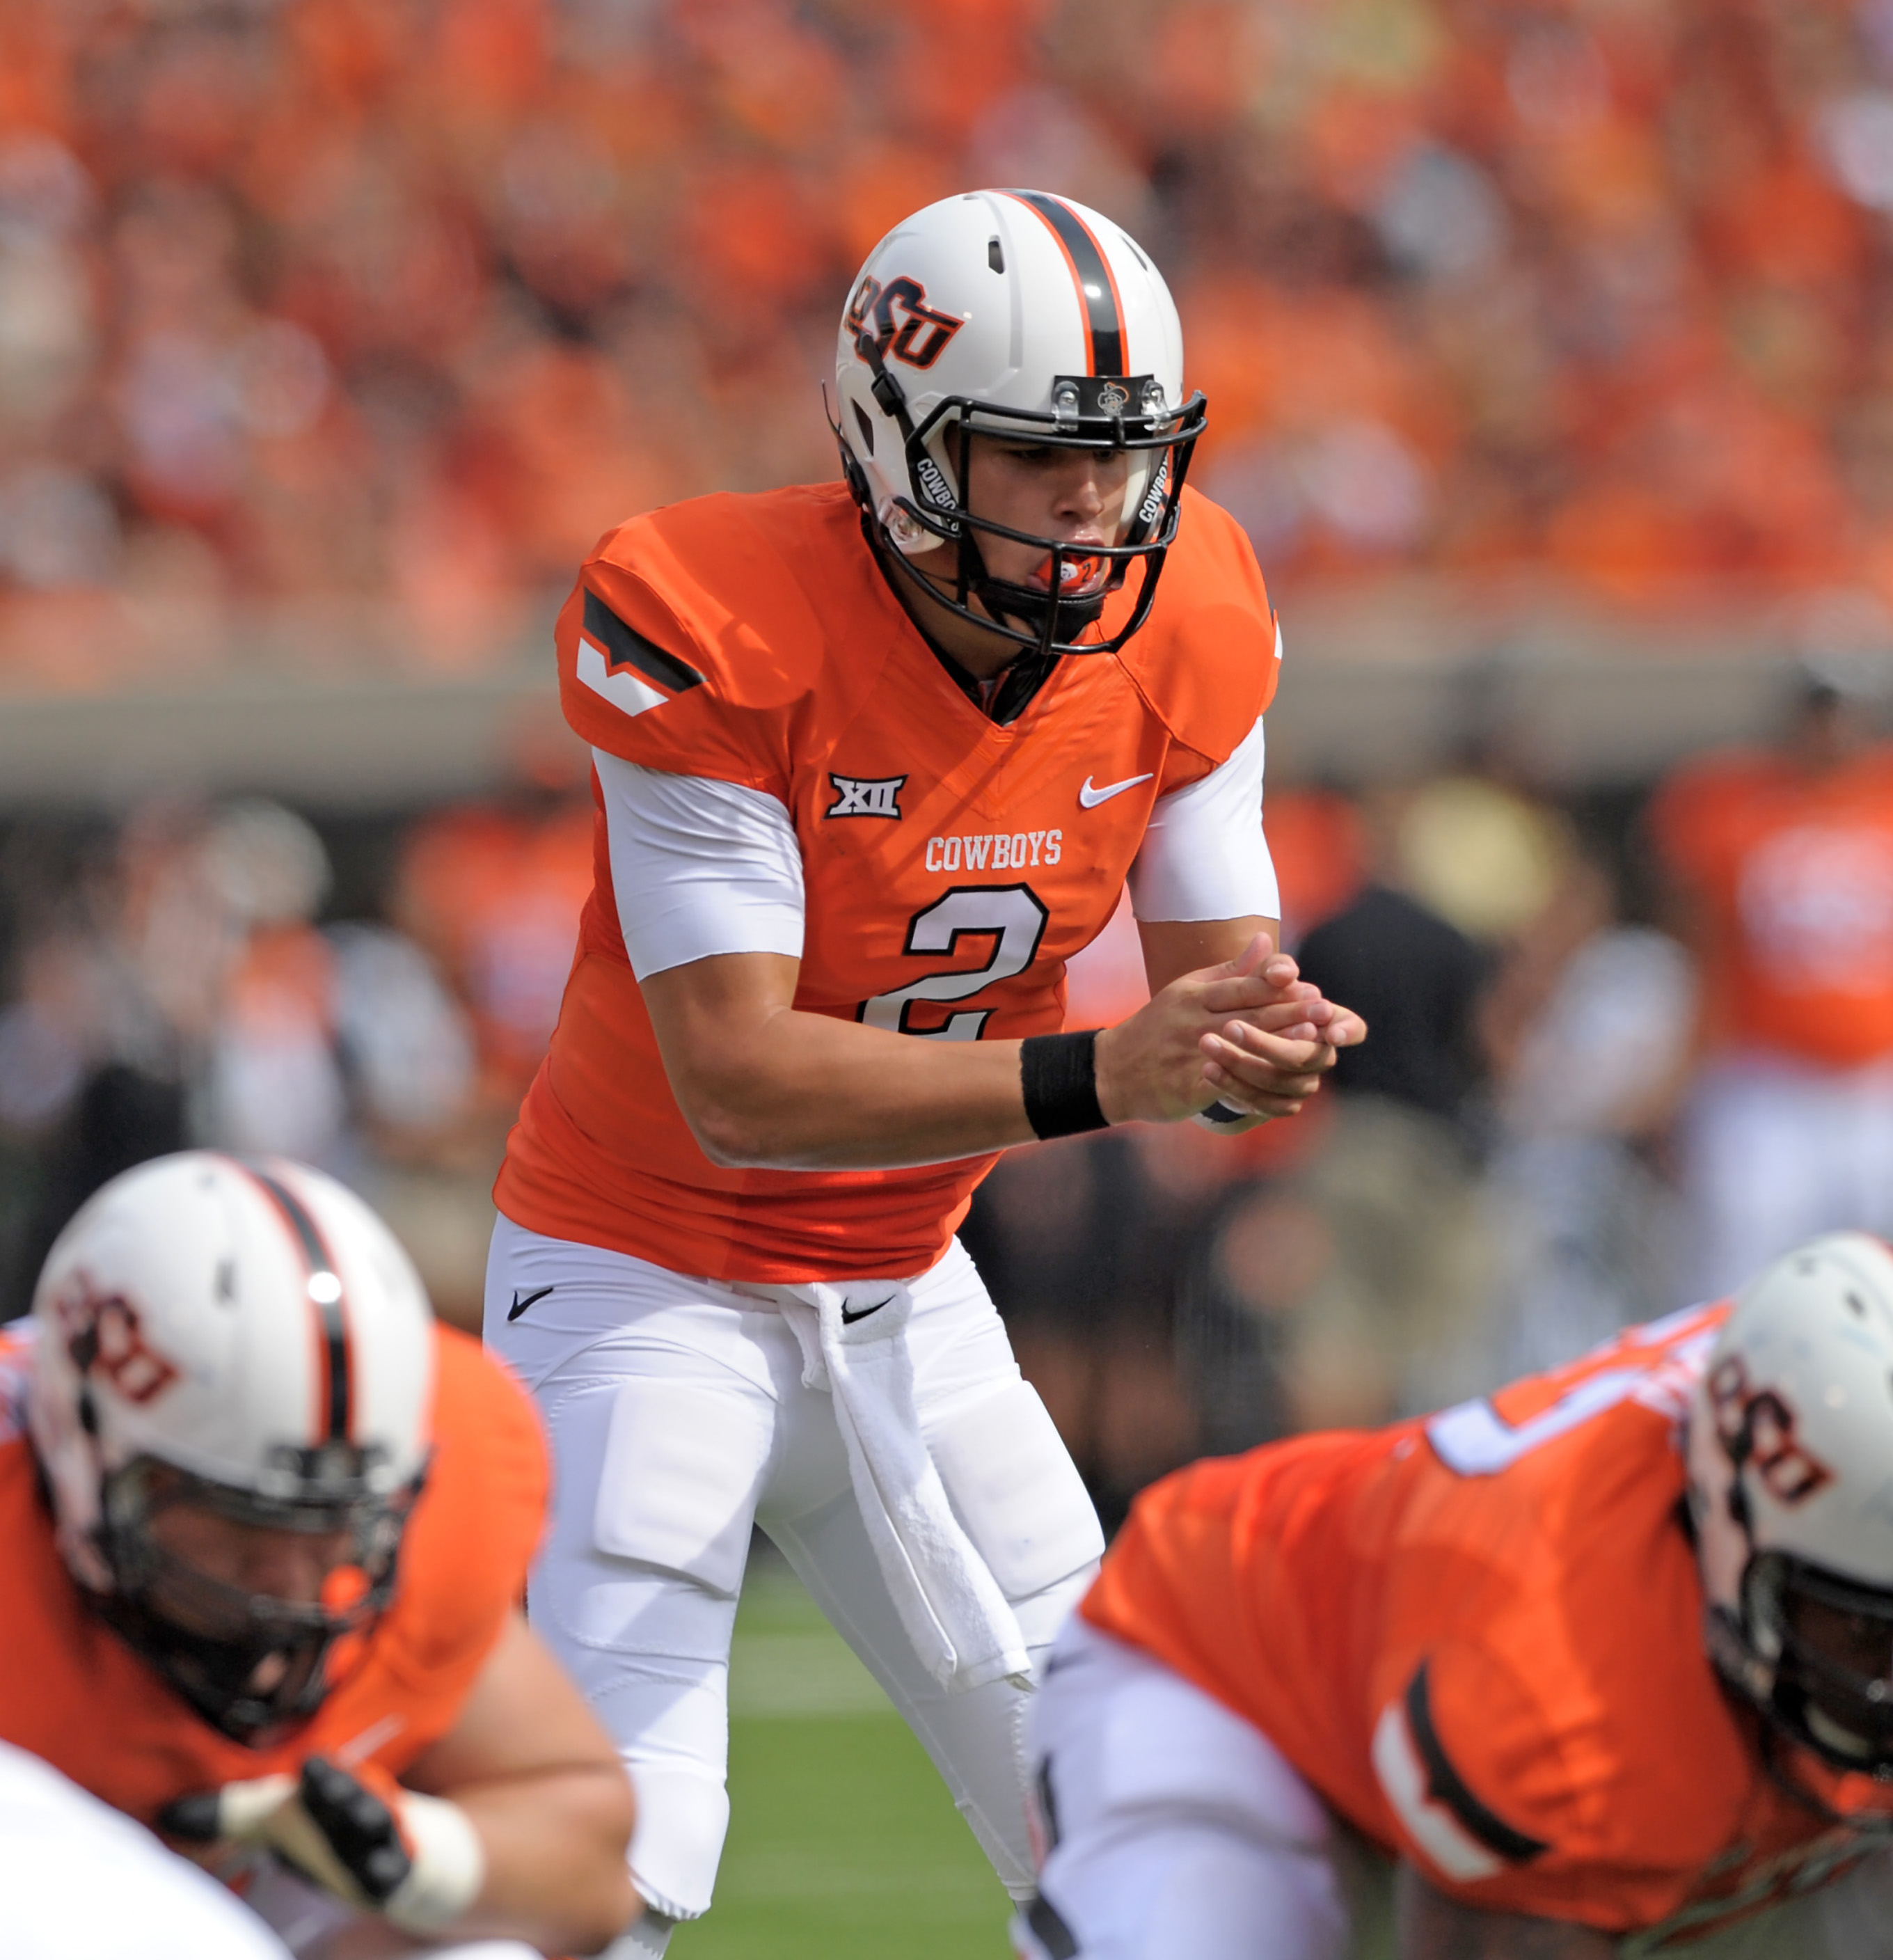 Oklahoma State quarterback Mason Rudolph lines up for the snap during an NCAA college football game in Stillwater, Okla., Saturday, Sept. 19, 2015. Rudolph completed 17 of 23 passing attempts for a total of 280 yards in the Oklahoma State 69-14 win over U